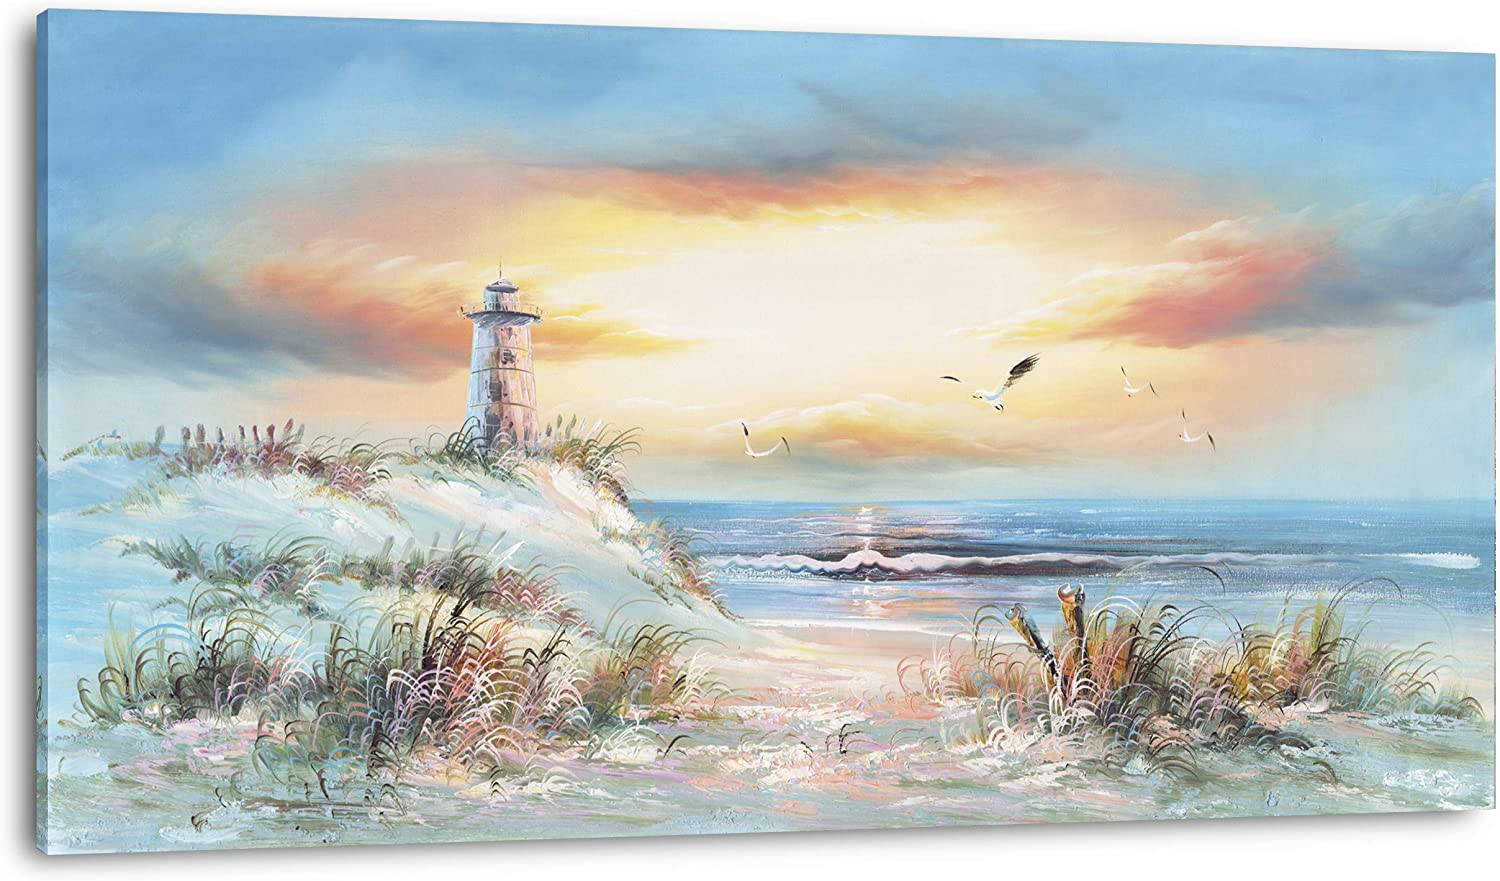 Extra Large Coastal Poster Printed Lighthouse Max Financial sales sale 69% OFF Sunset Landscape O